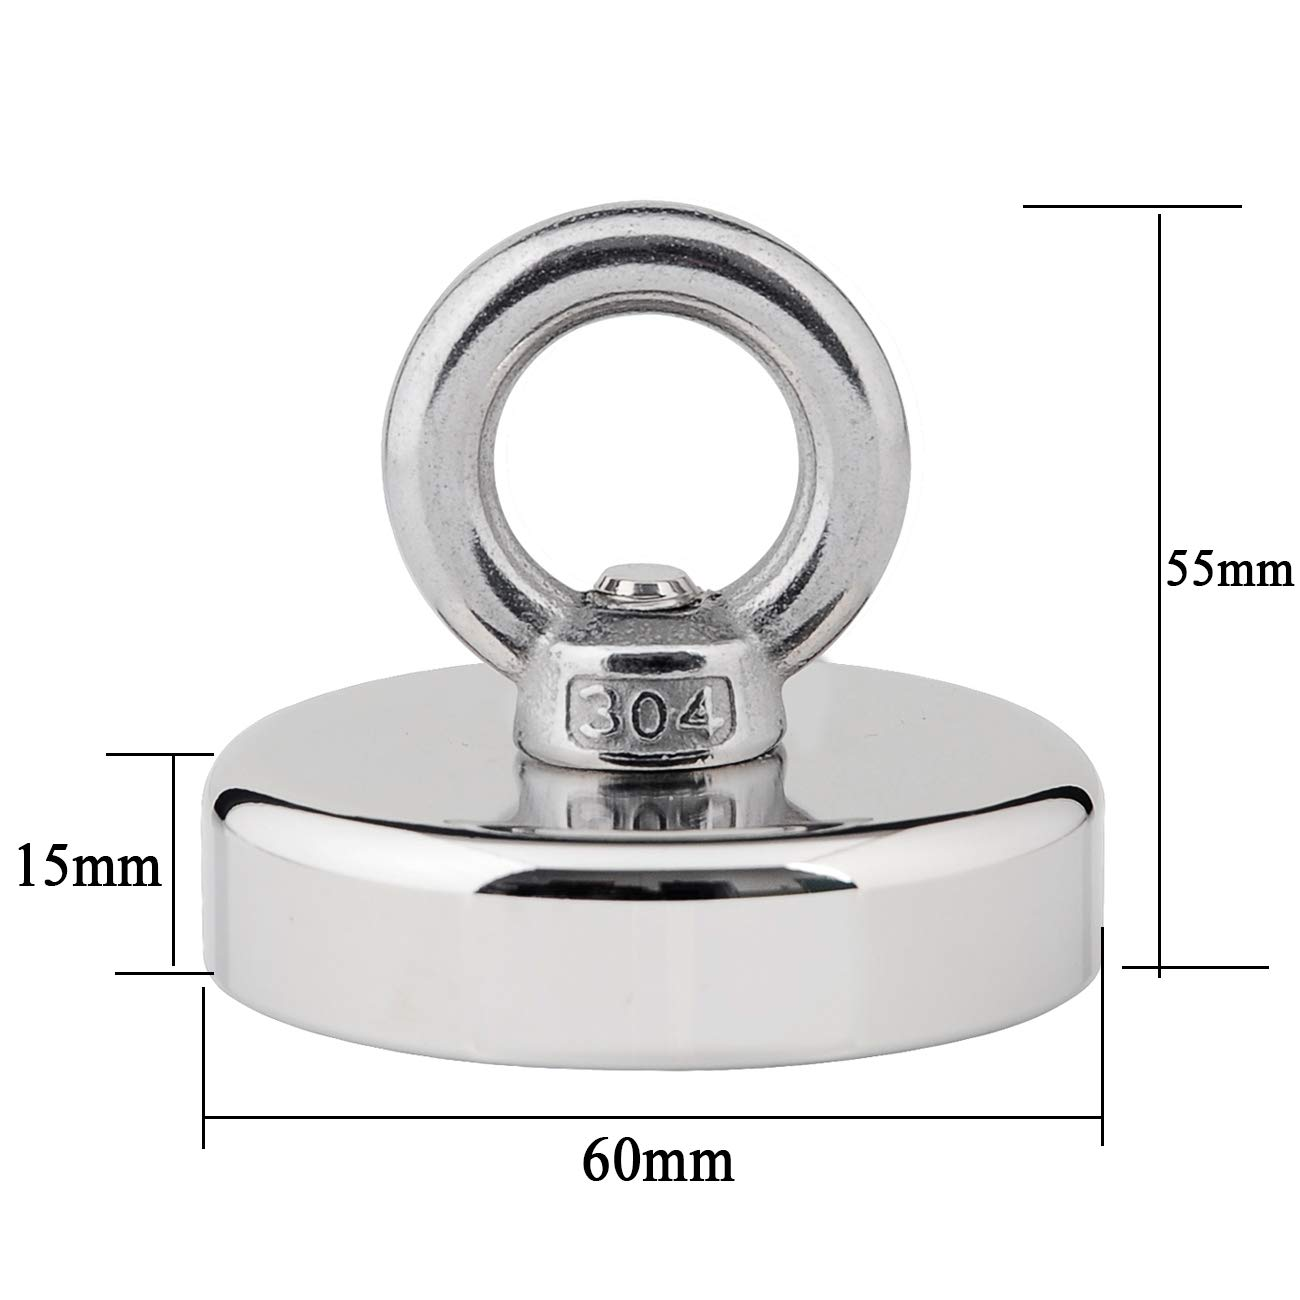 Diameter 60mm 160KG Pulling Force N40 Magnetic Grade Strong Powerful Fishing Magnet with Eyebolt for Magnet Fishing and Retrieving in River Thickness 15mm Uolor Upgraded Round Neodymium Magnet